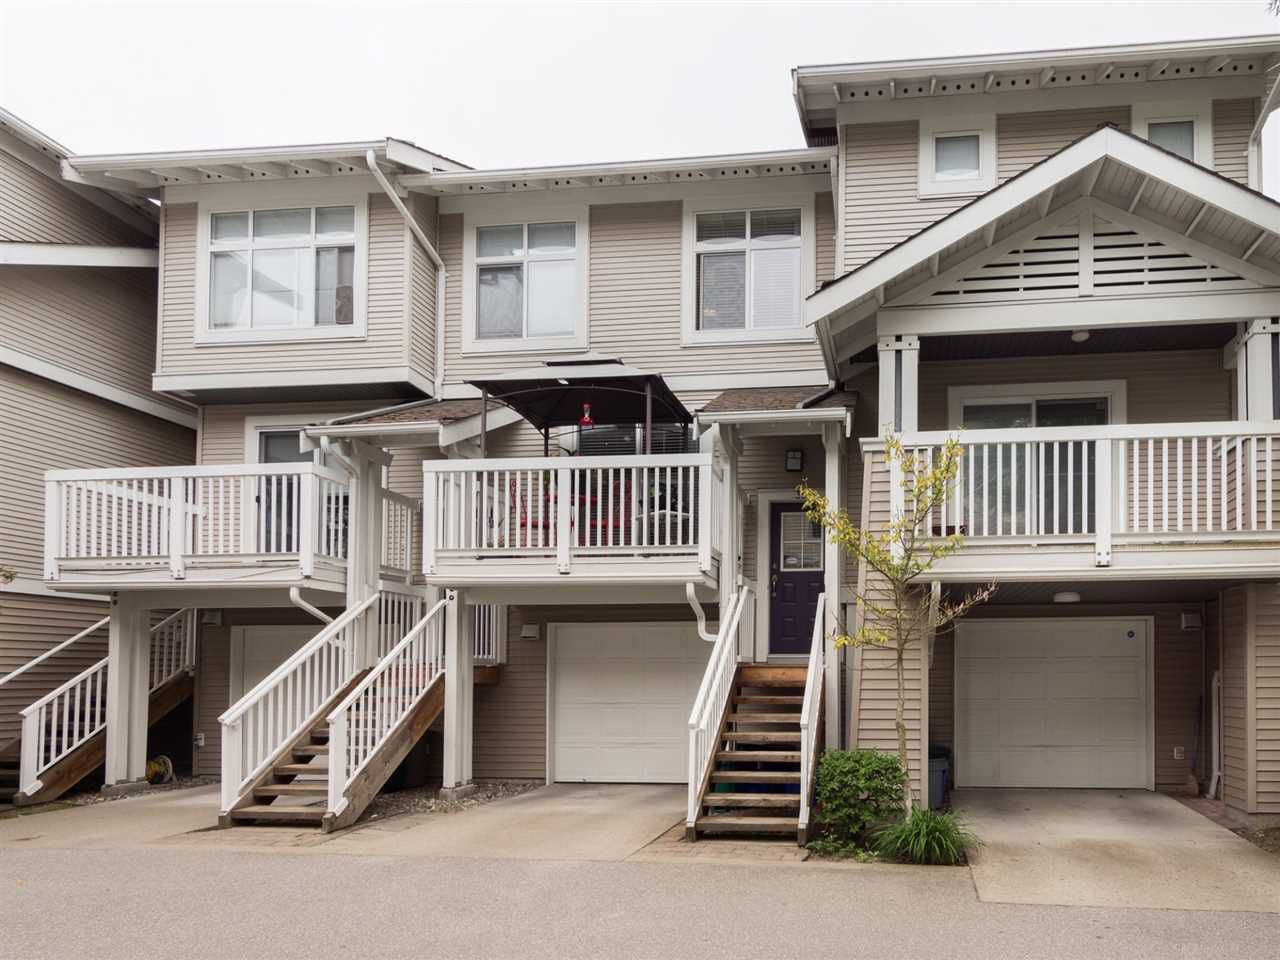 """Main Photo: 35 7179 201 Street in Langley: Willoughby Heights Townhouse for sale in """"DENIM"""" : MLS®# R2268978"""